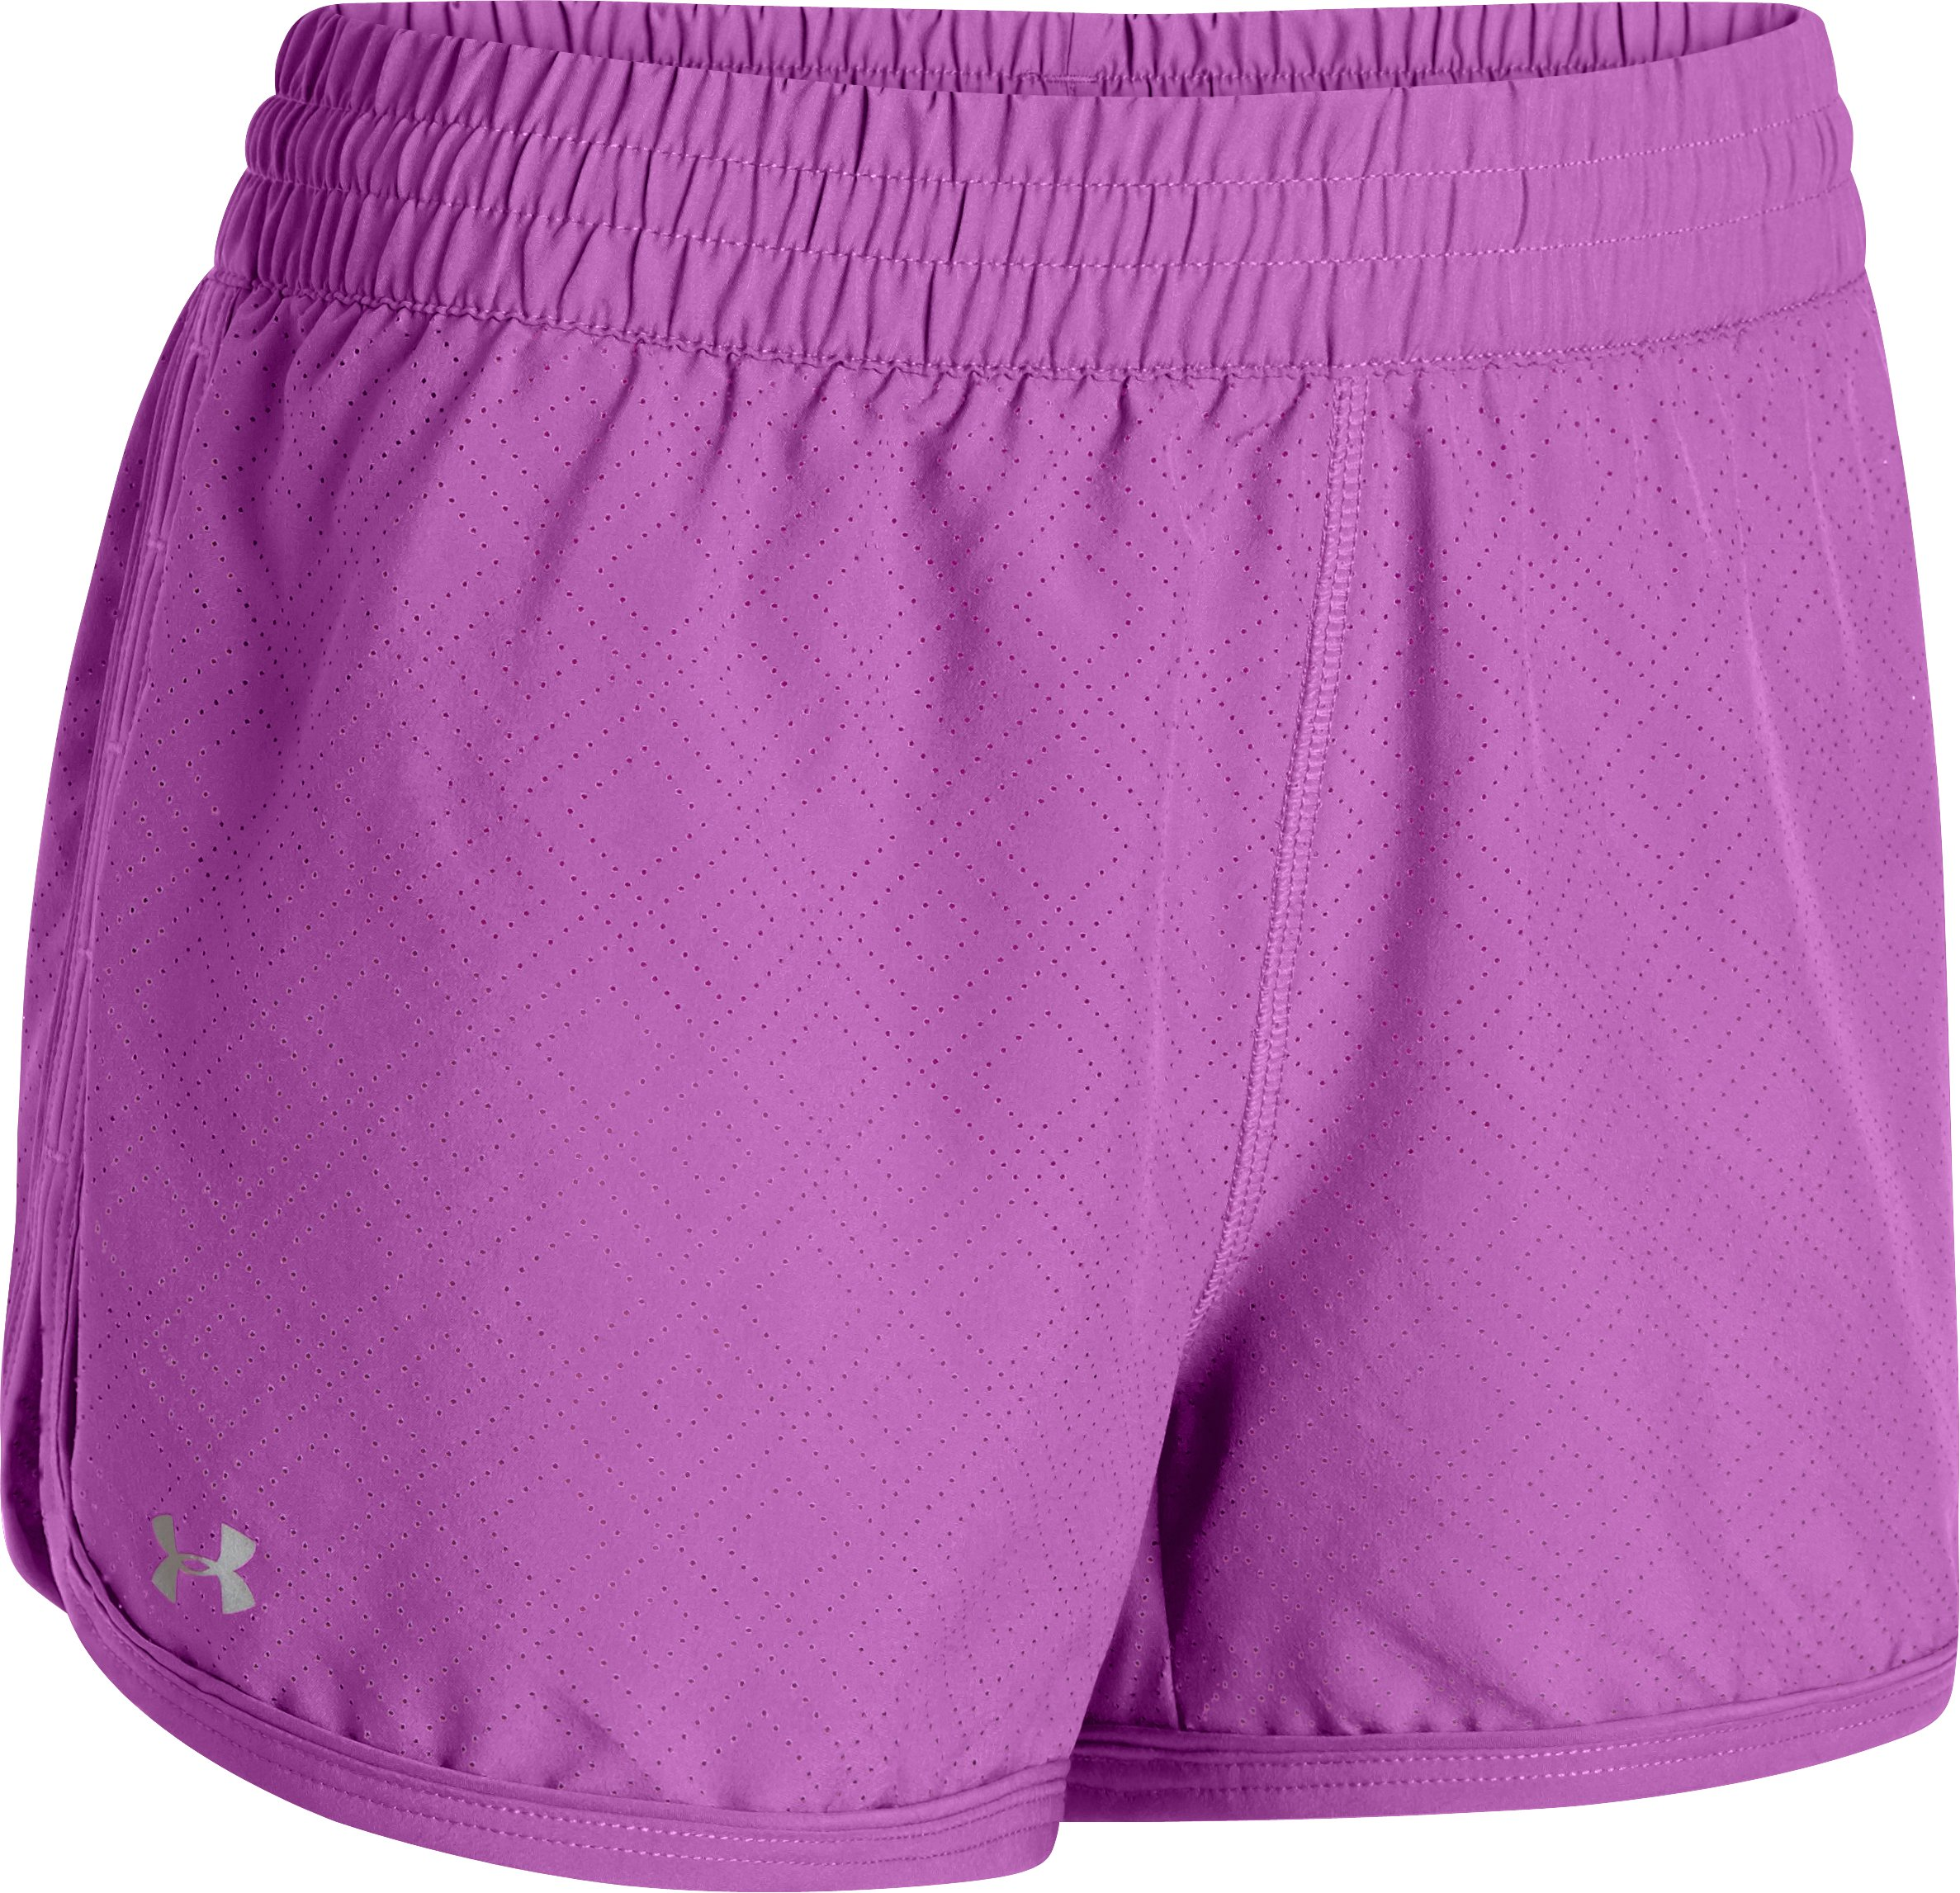 Women's Perforated UA Great Escape Shorts II, EXOTIC BLOOM